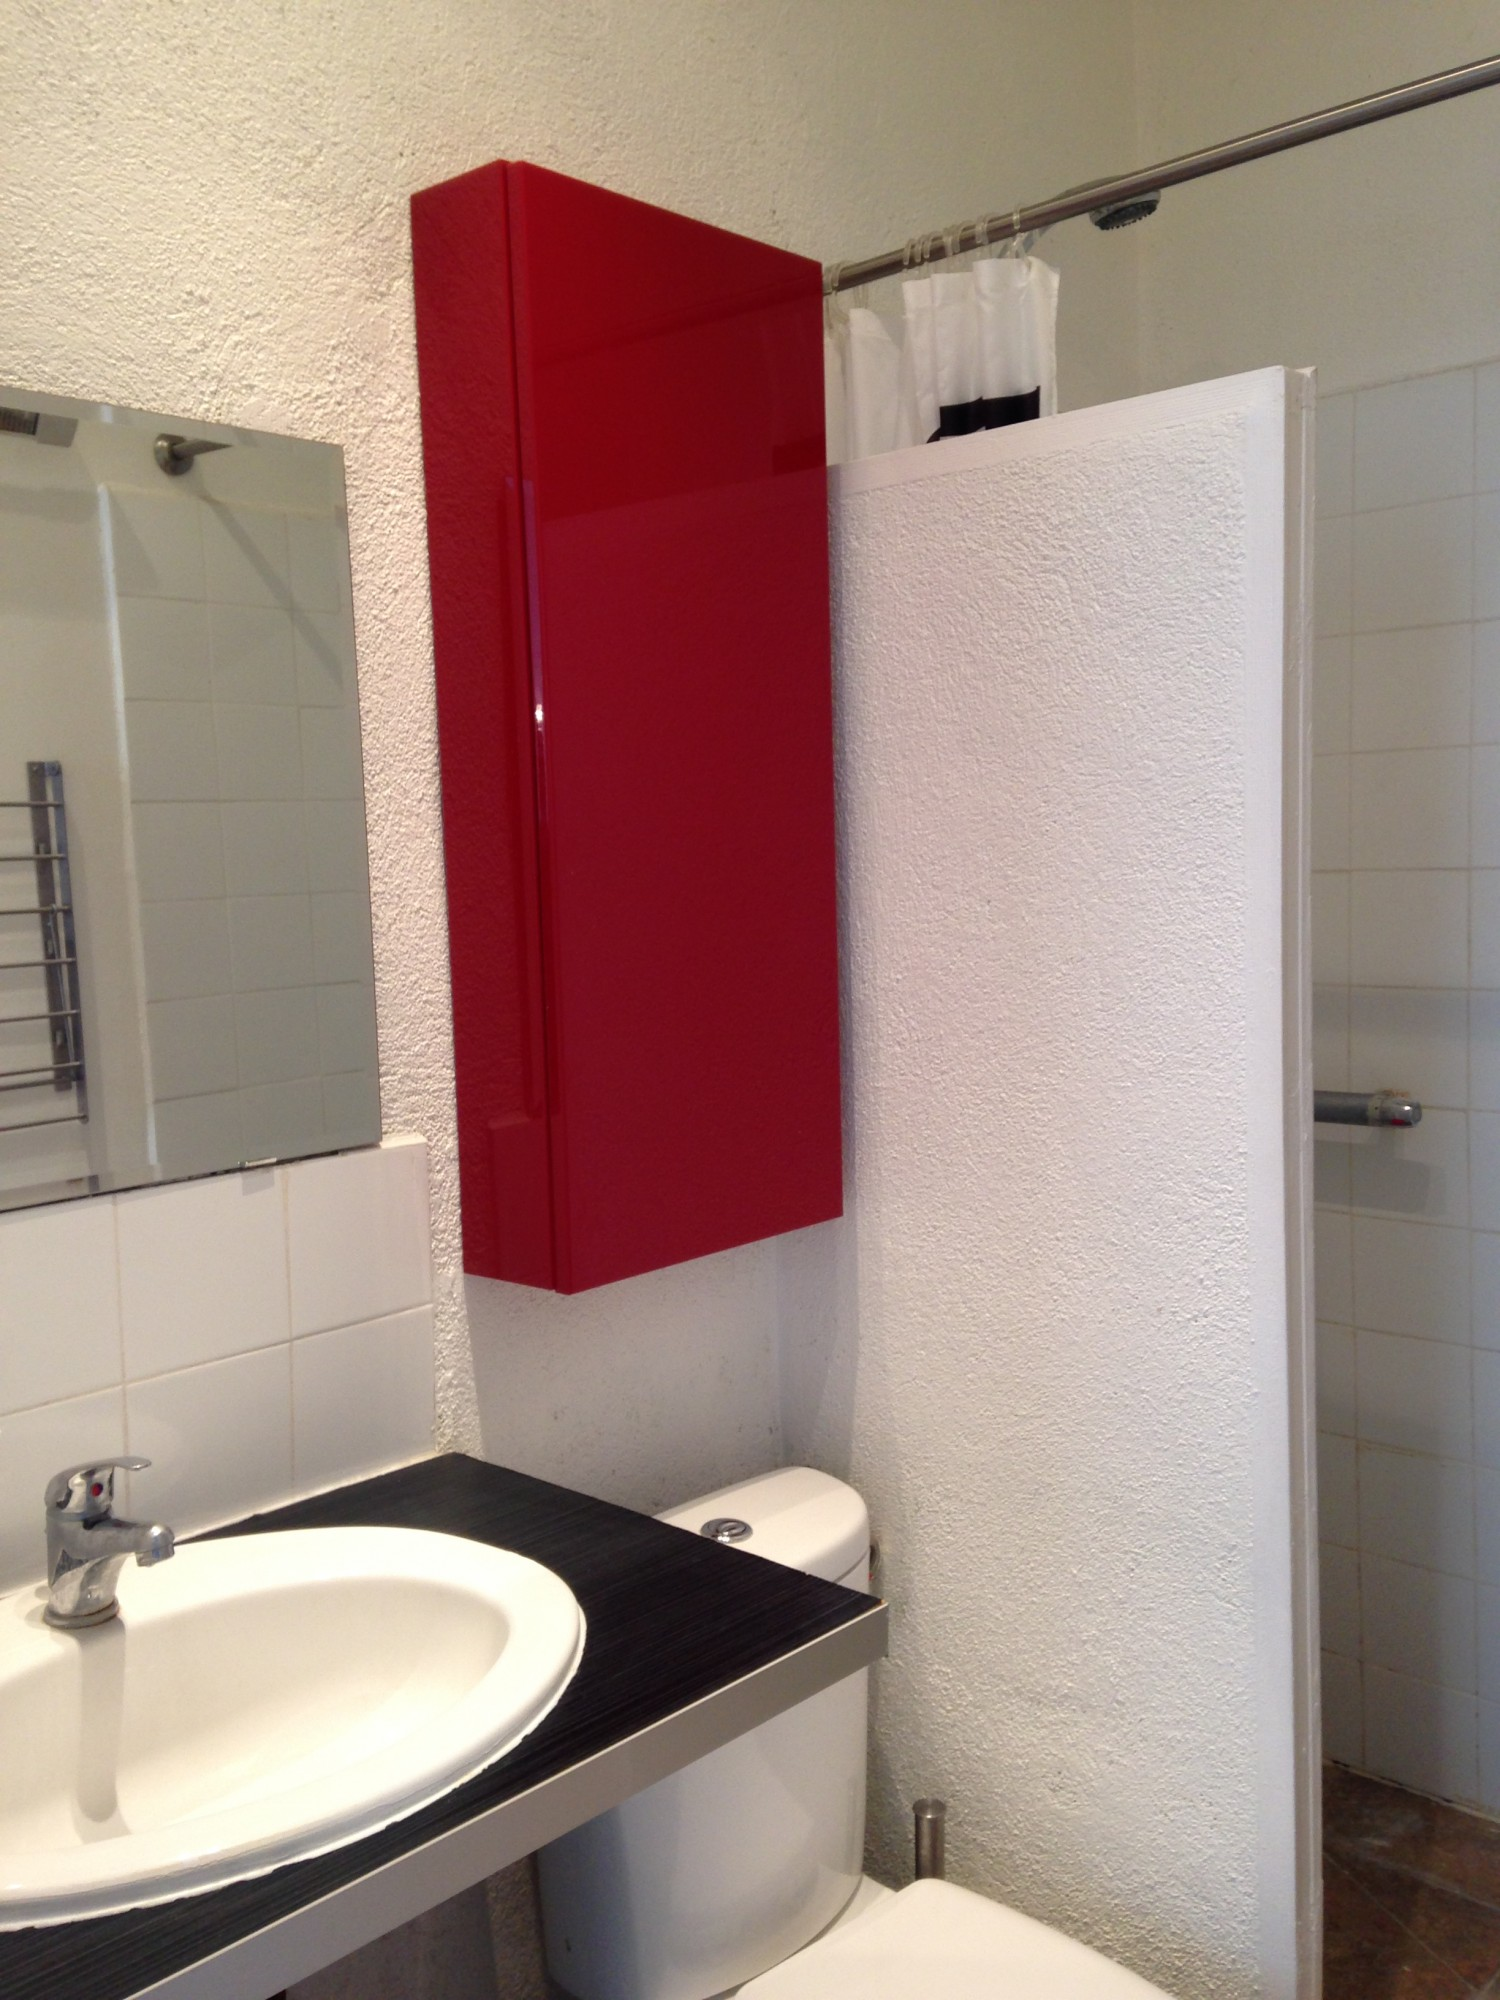 Locations appartement meubl t1 f1 13006 rue auguste - Location studio meuble marseille ...